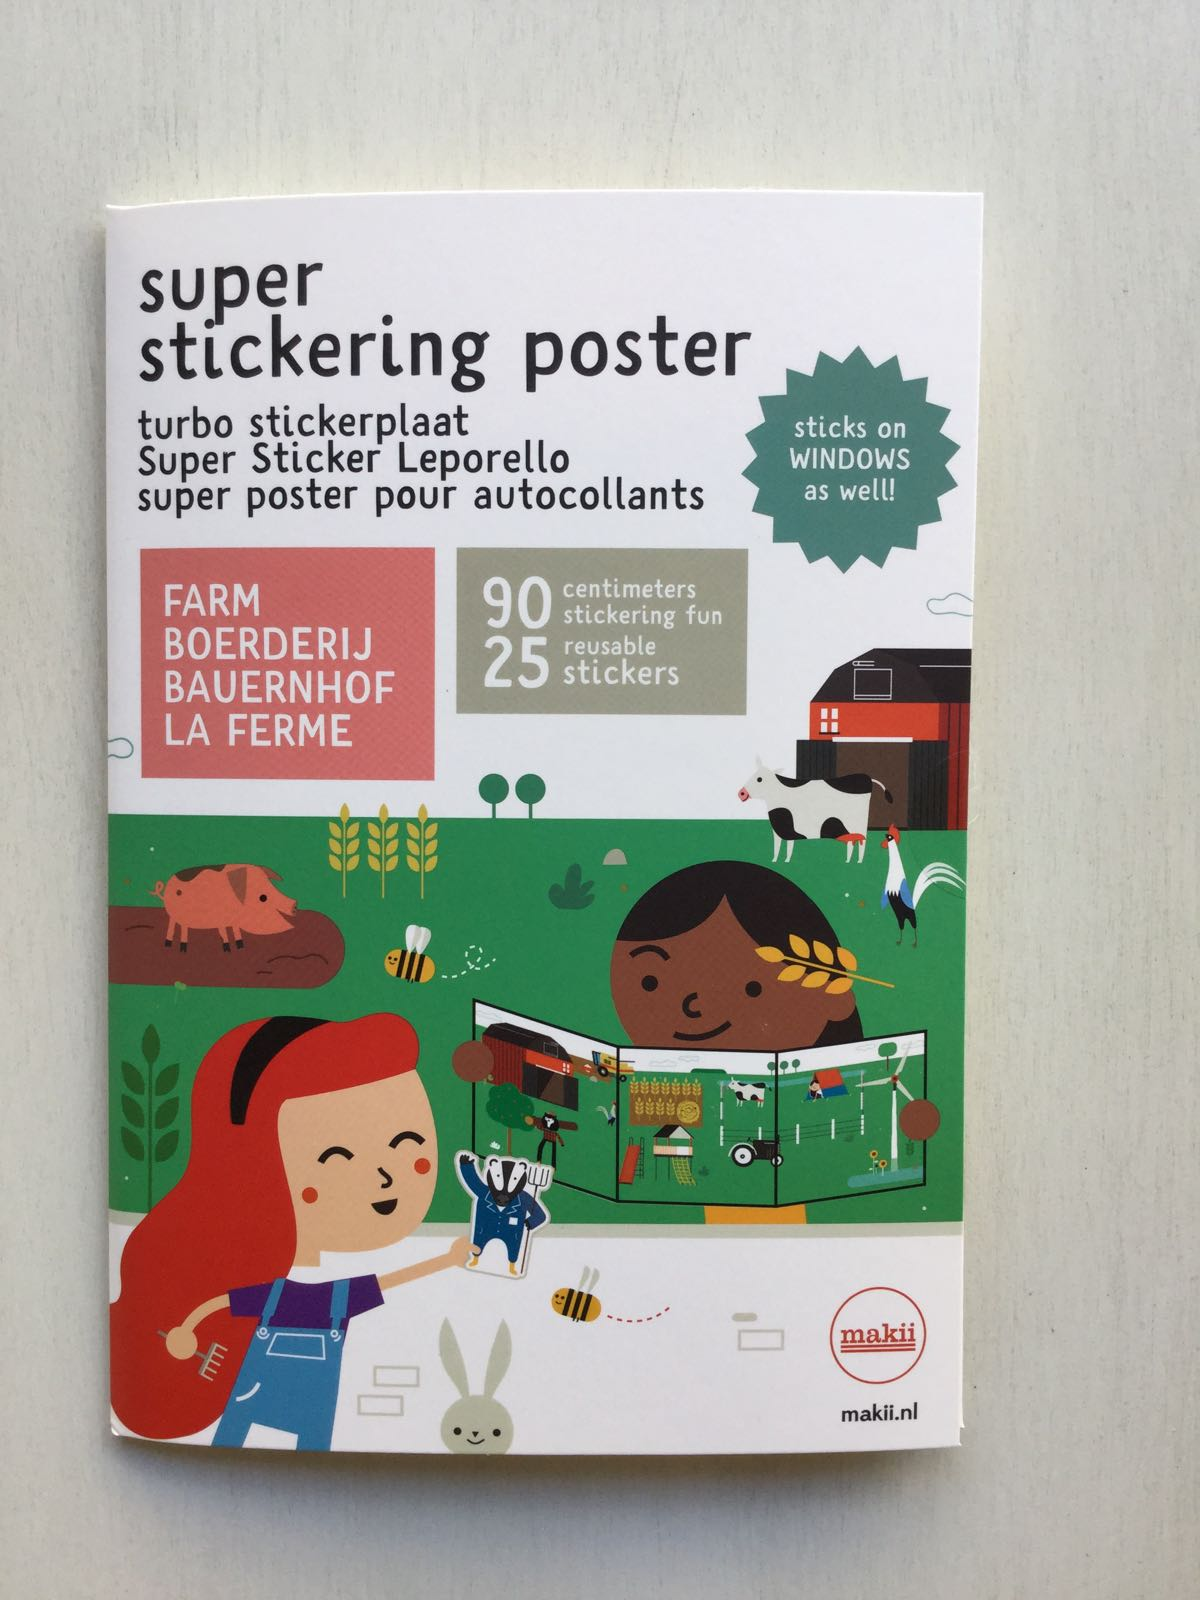 Makii - Super stickering poster - Farm